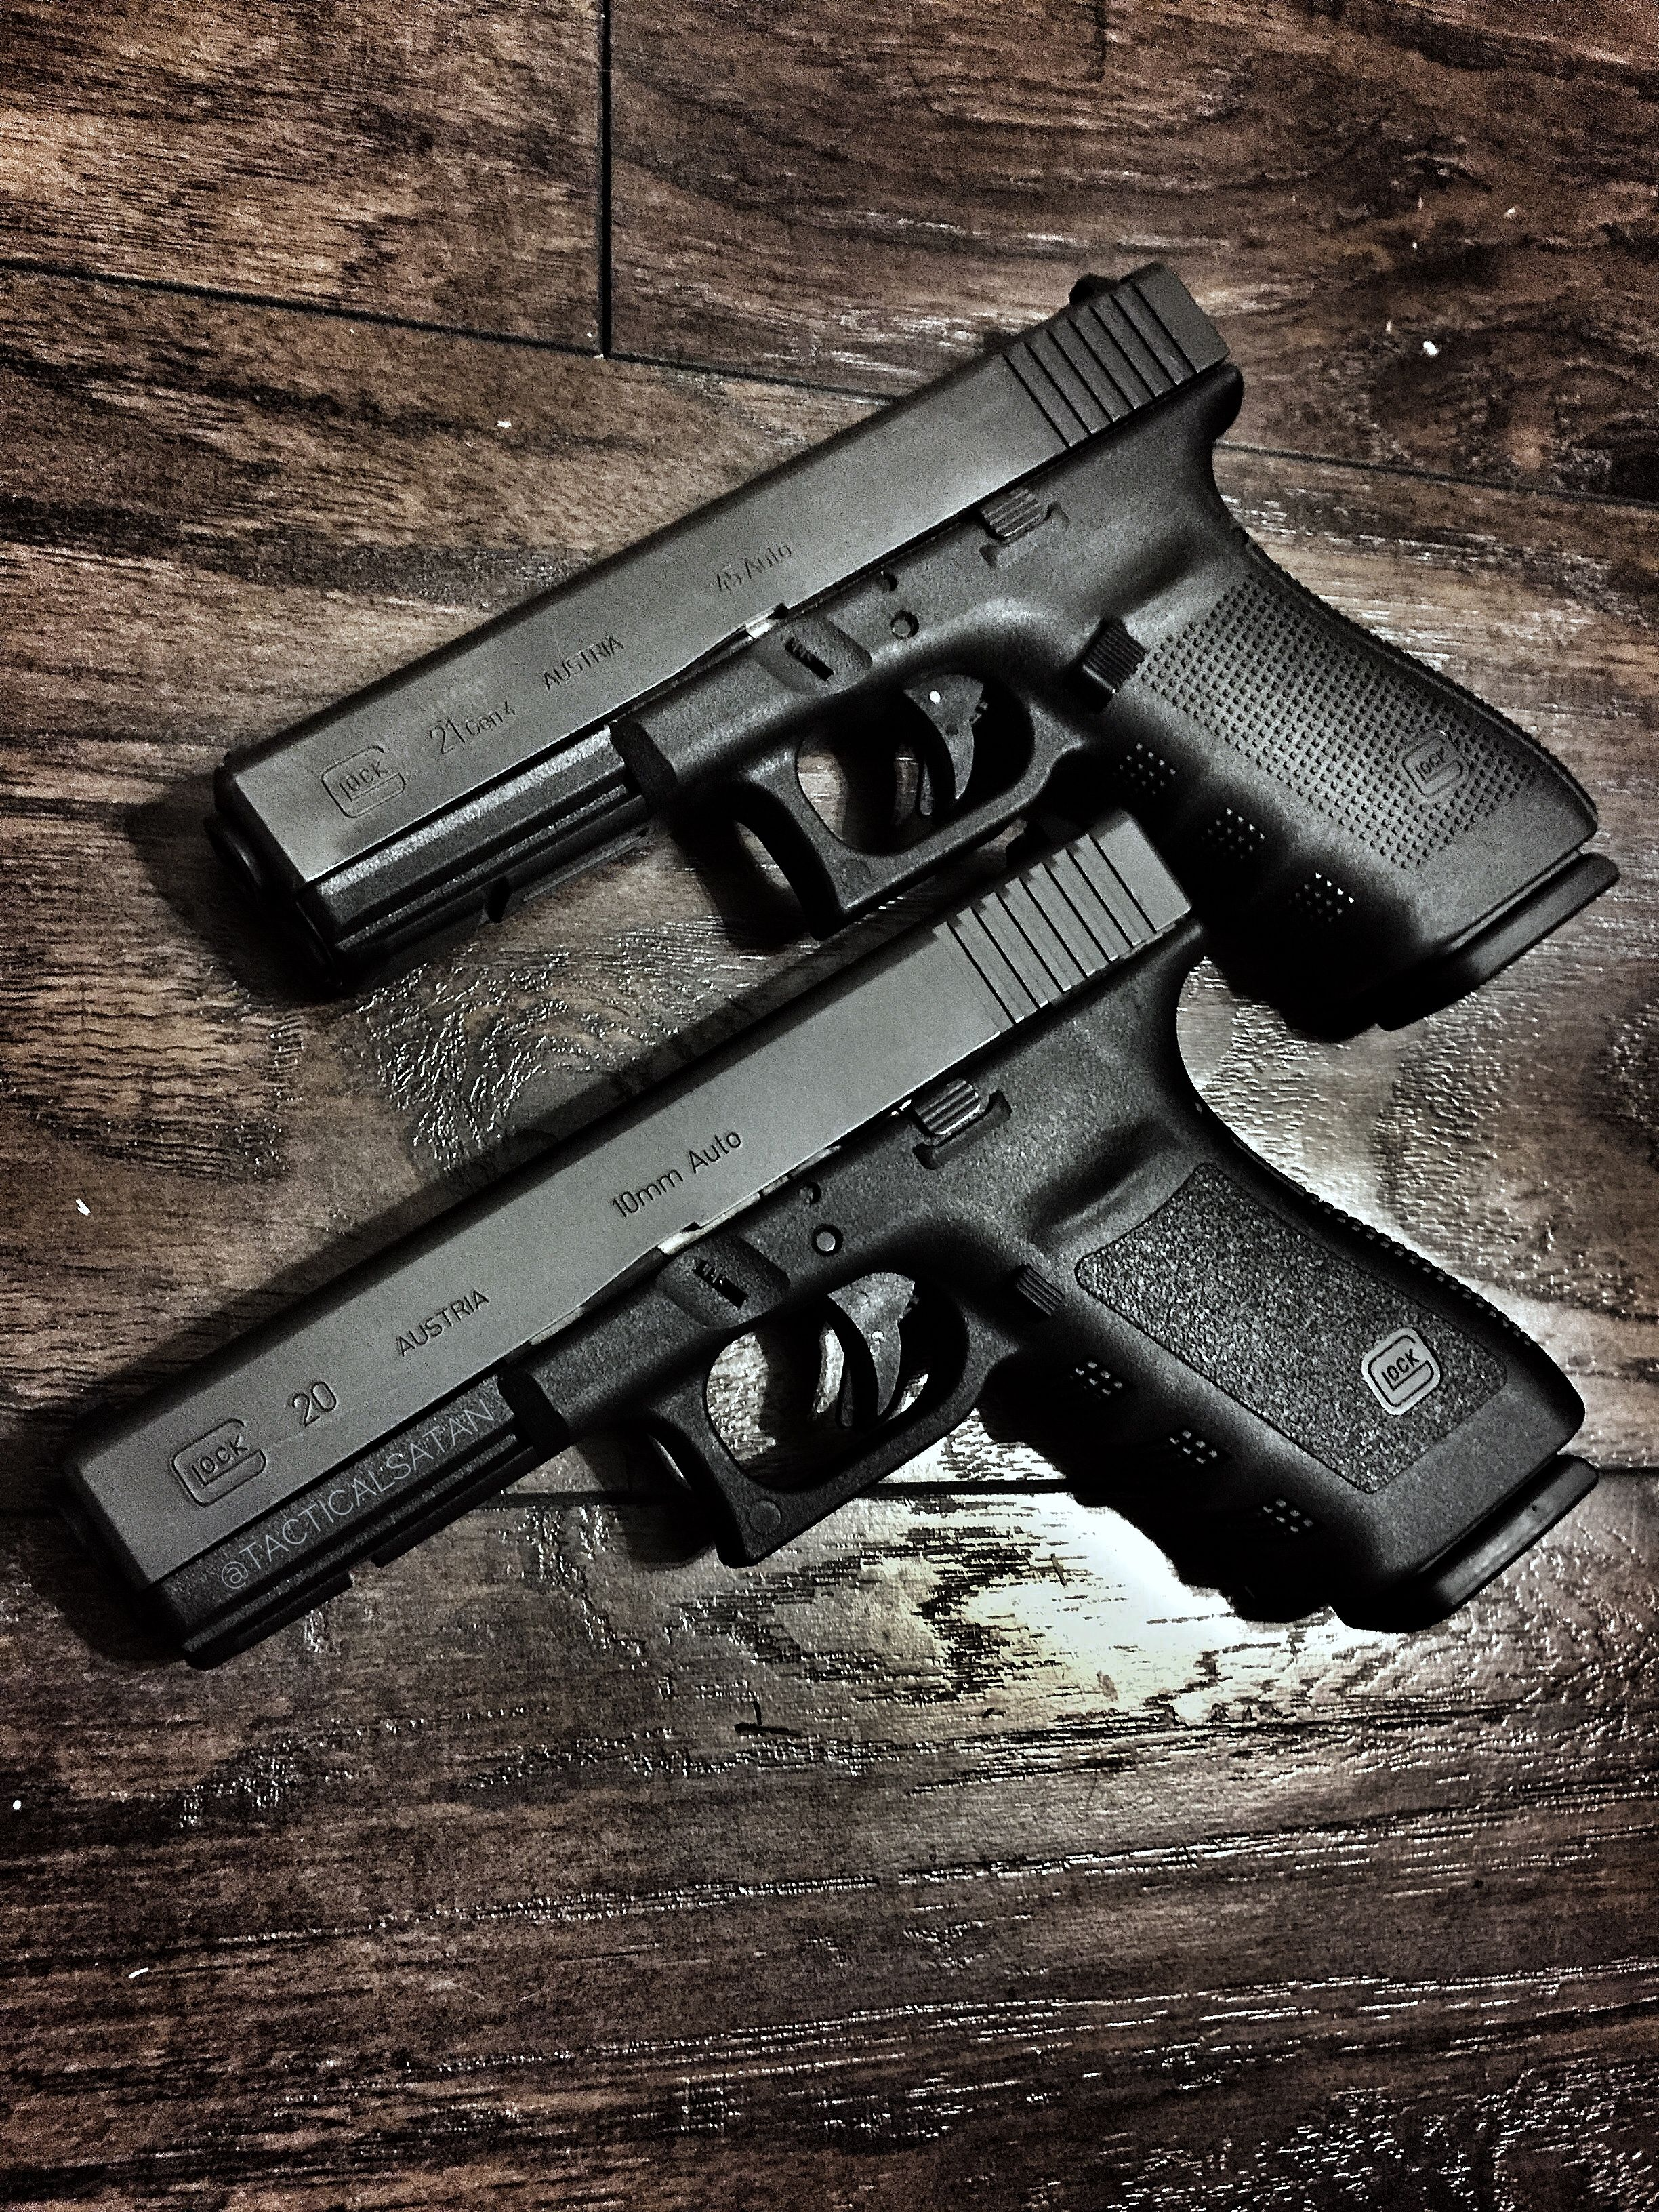 Glock 20 and 21  The most powerful Glocks  | Firearms | Guns, Hand